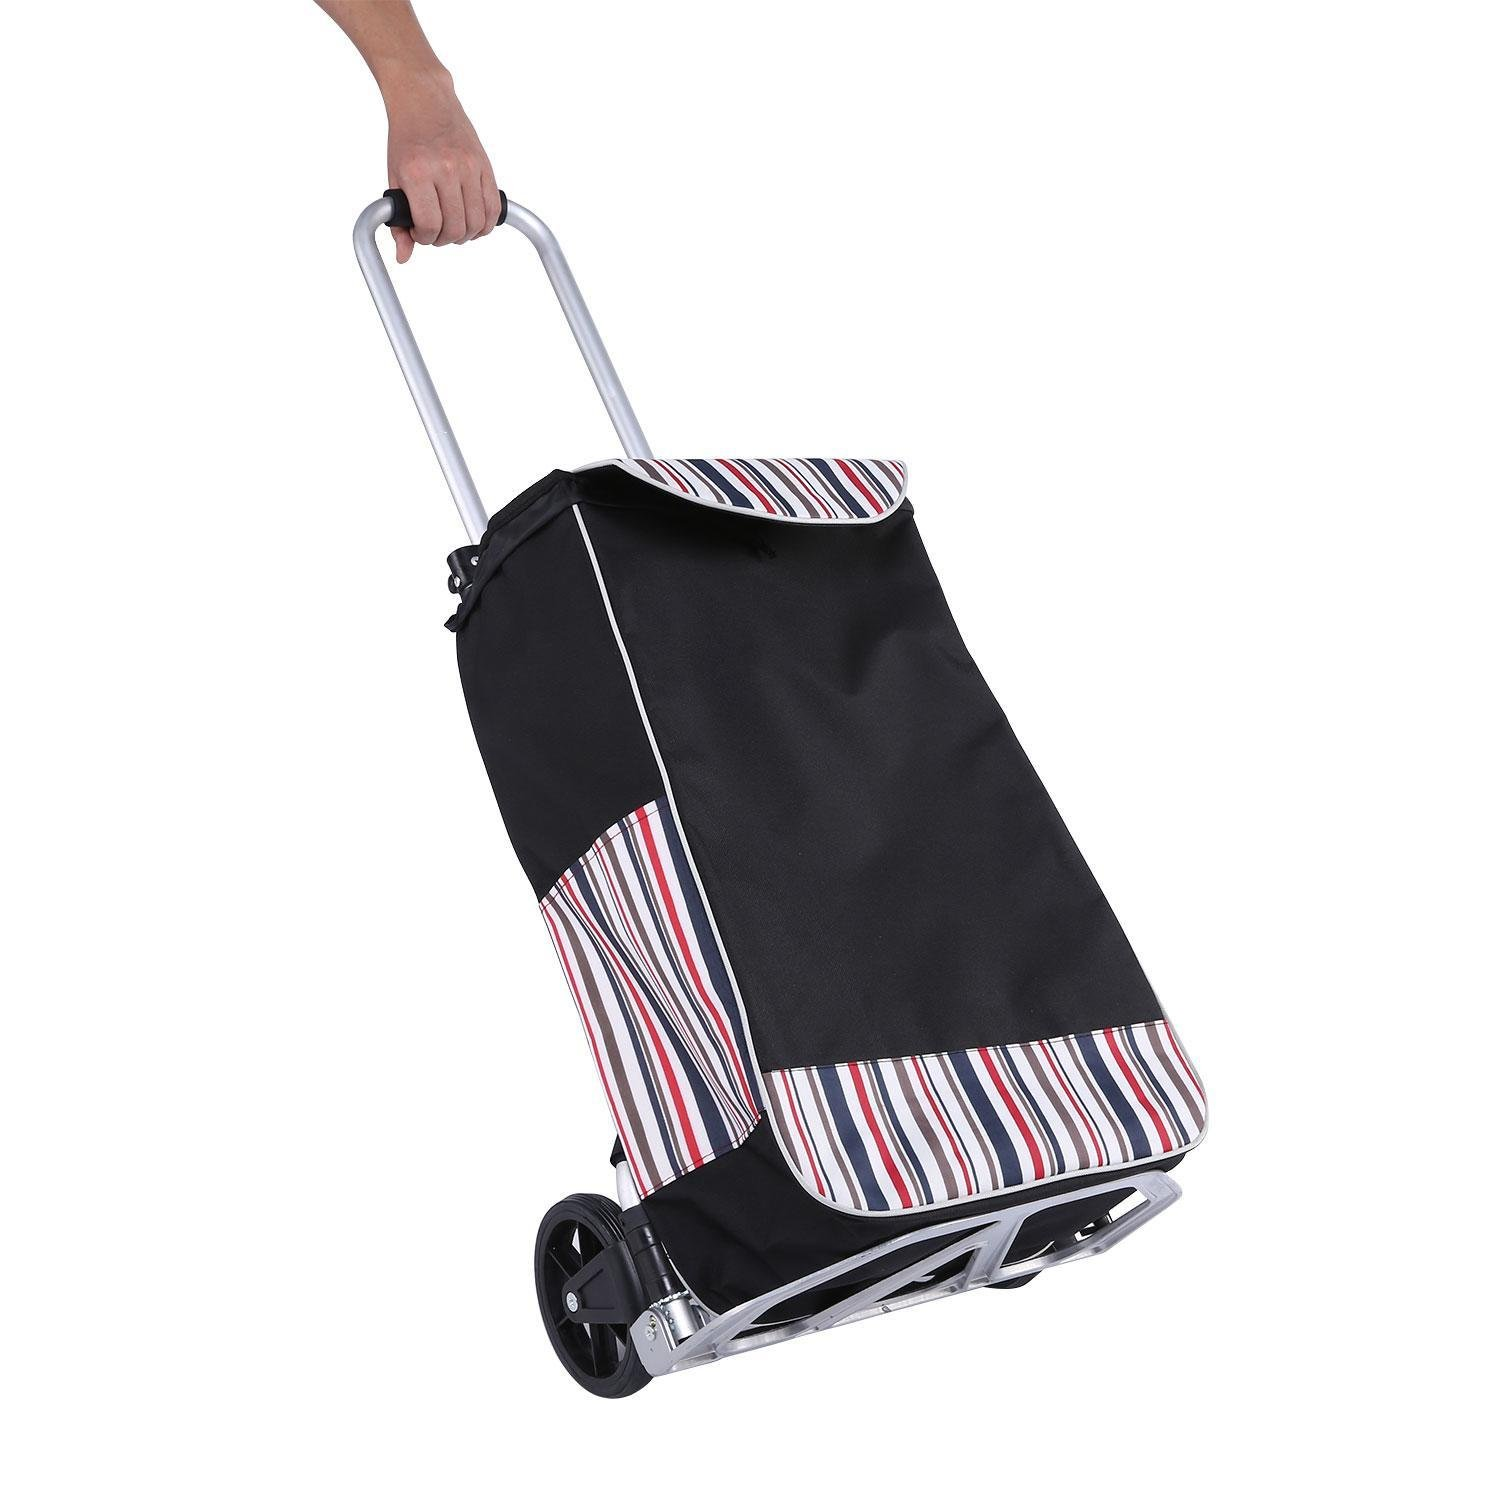 Elever Folding Shopping Cart with Wheels, Stair Climbing Cart Grocery Laundry Utility Cart with Big Bag for Home Travel